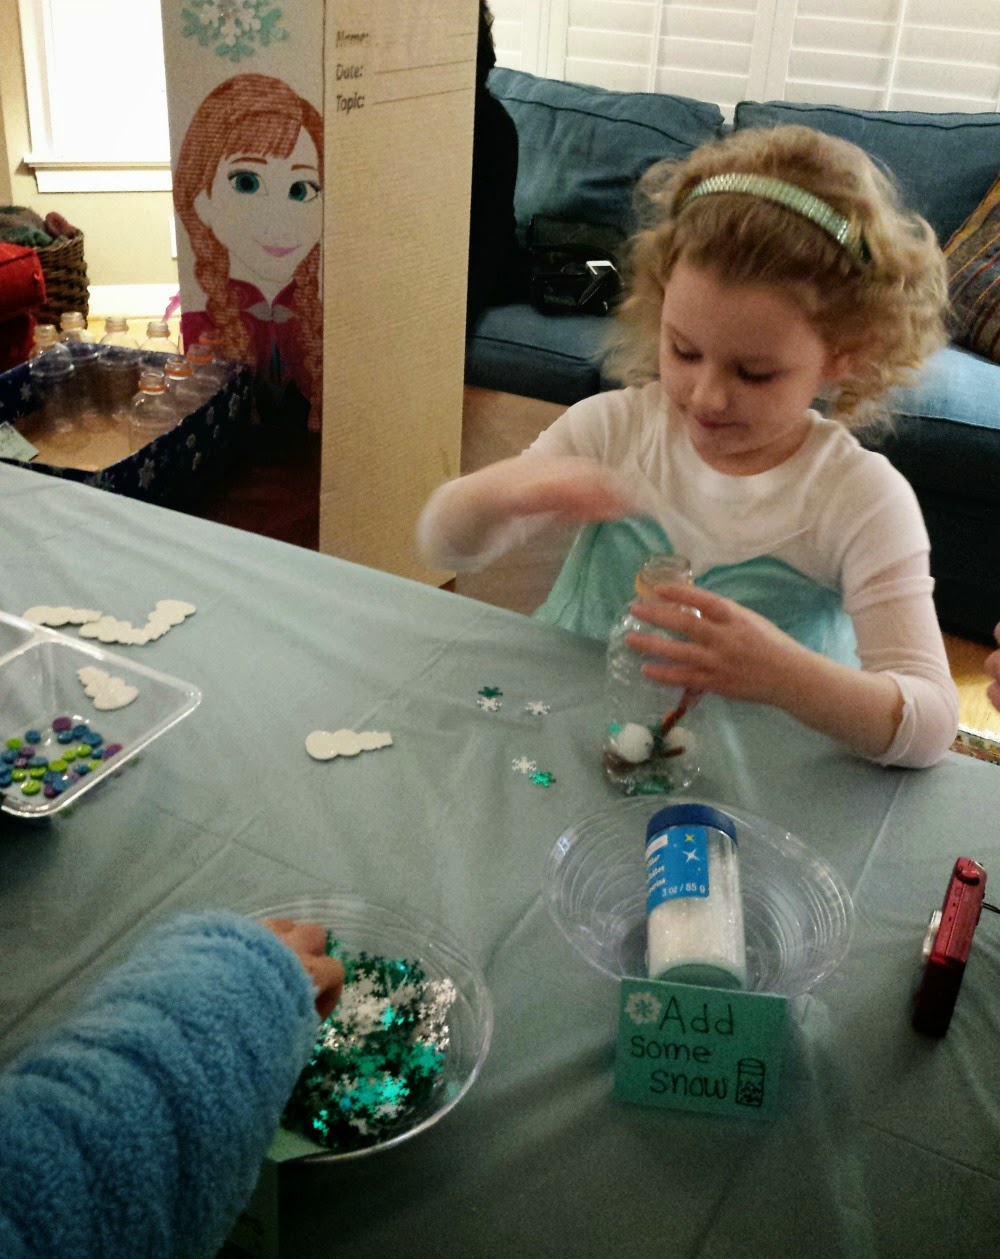 Frozen Crafts: Building a Snowman